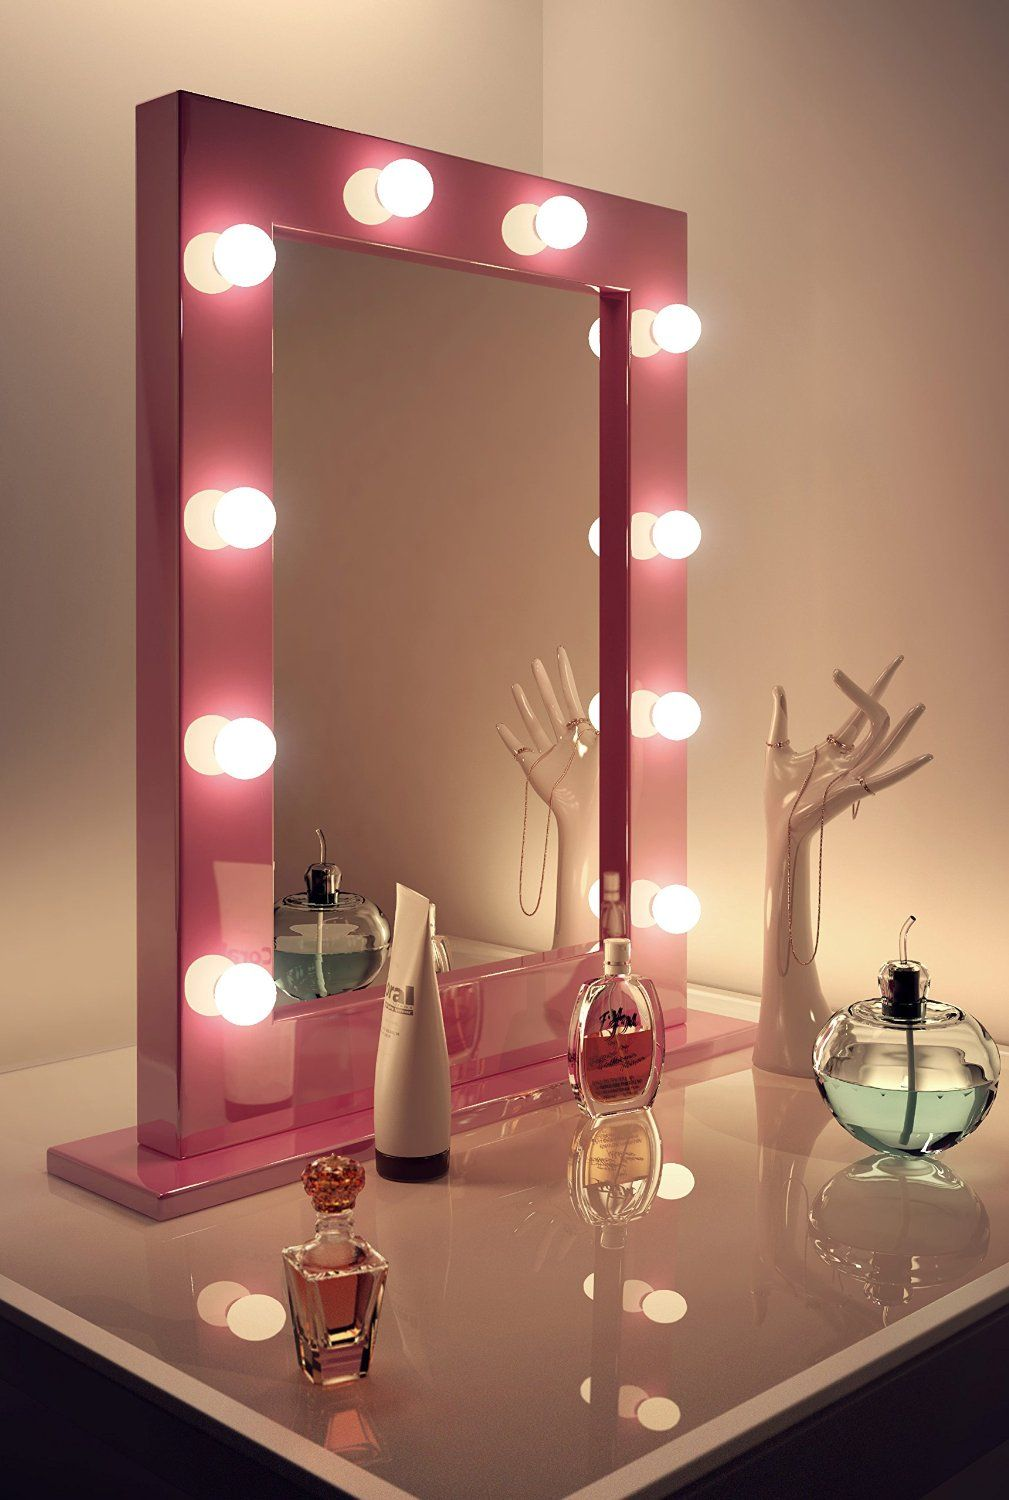 Vanity Mirror With Lights Dressing Room : Pink Hollywood Make Up Theatre Dressing Room Mirror k153: Amazon.co.uk: Kitchen & Home Judys ...